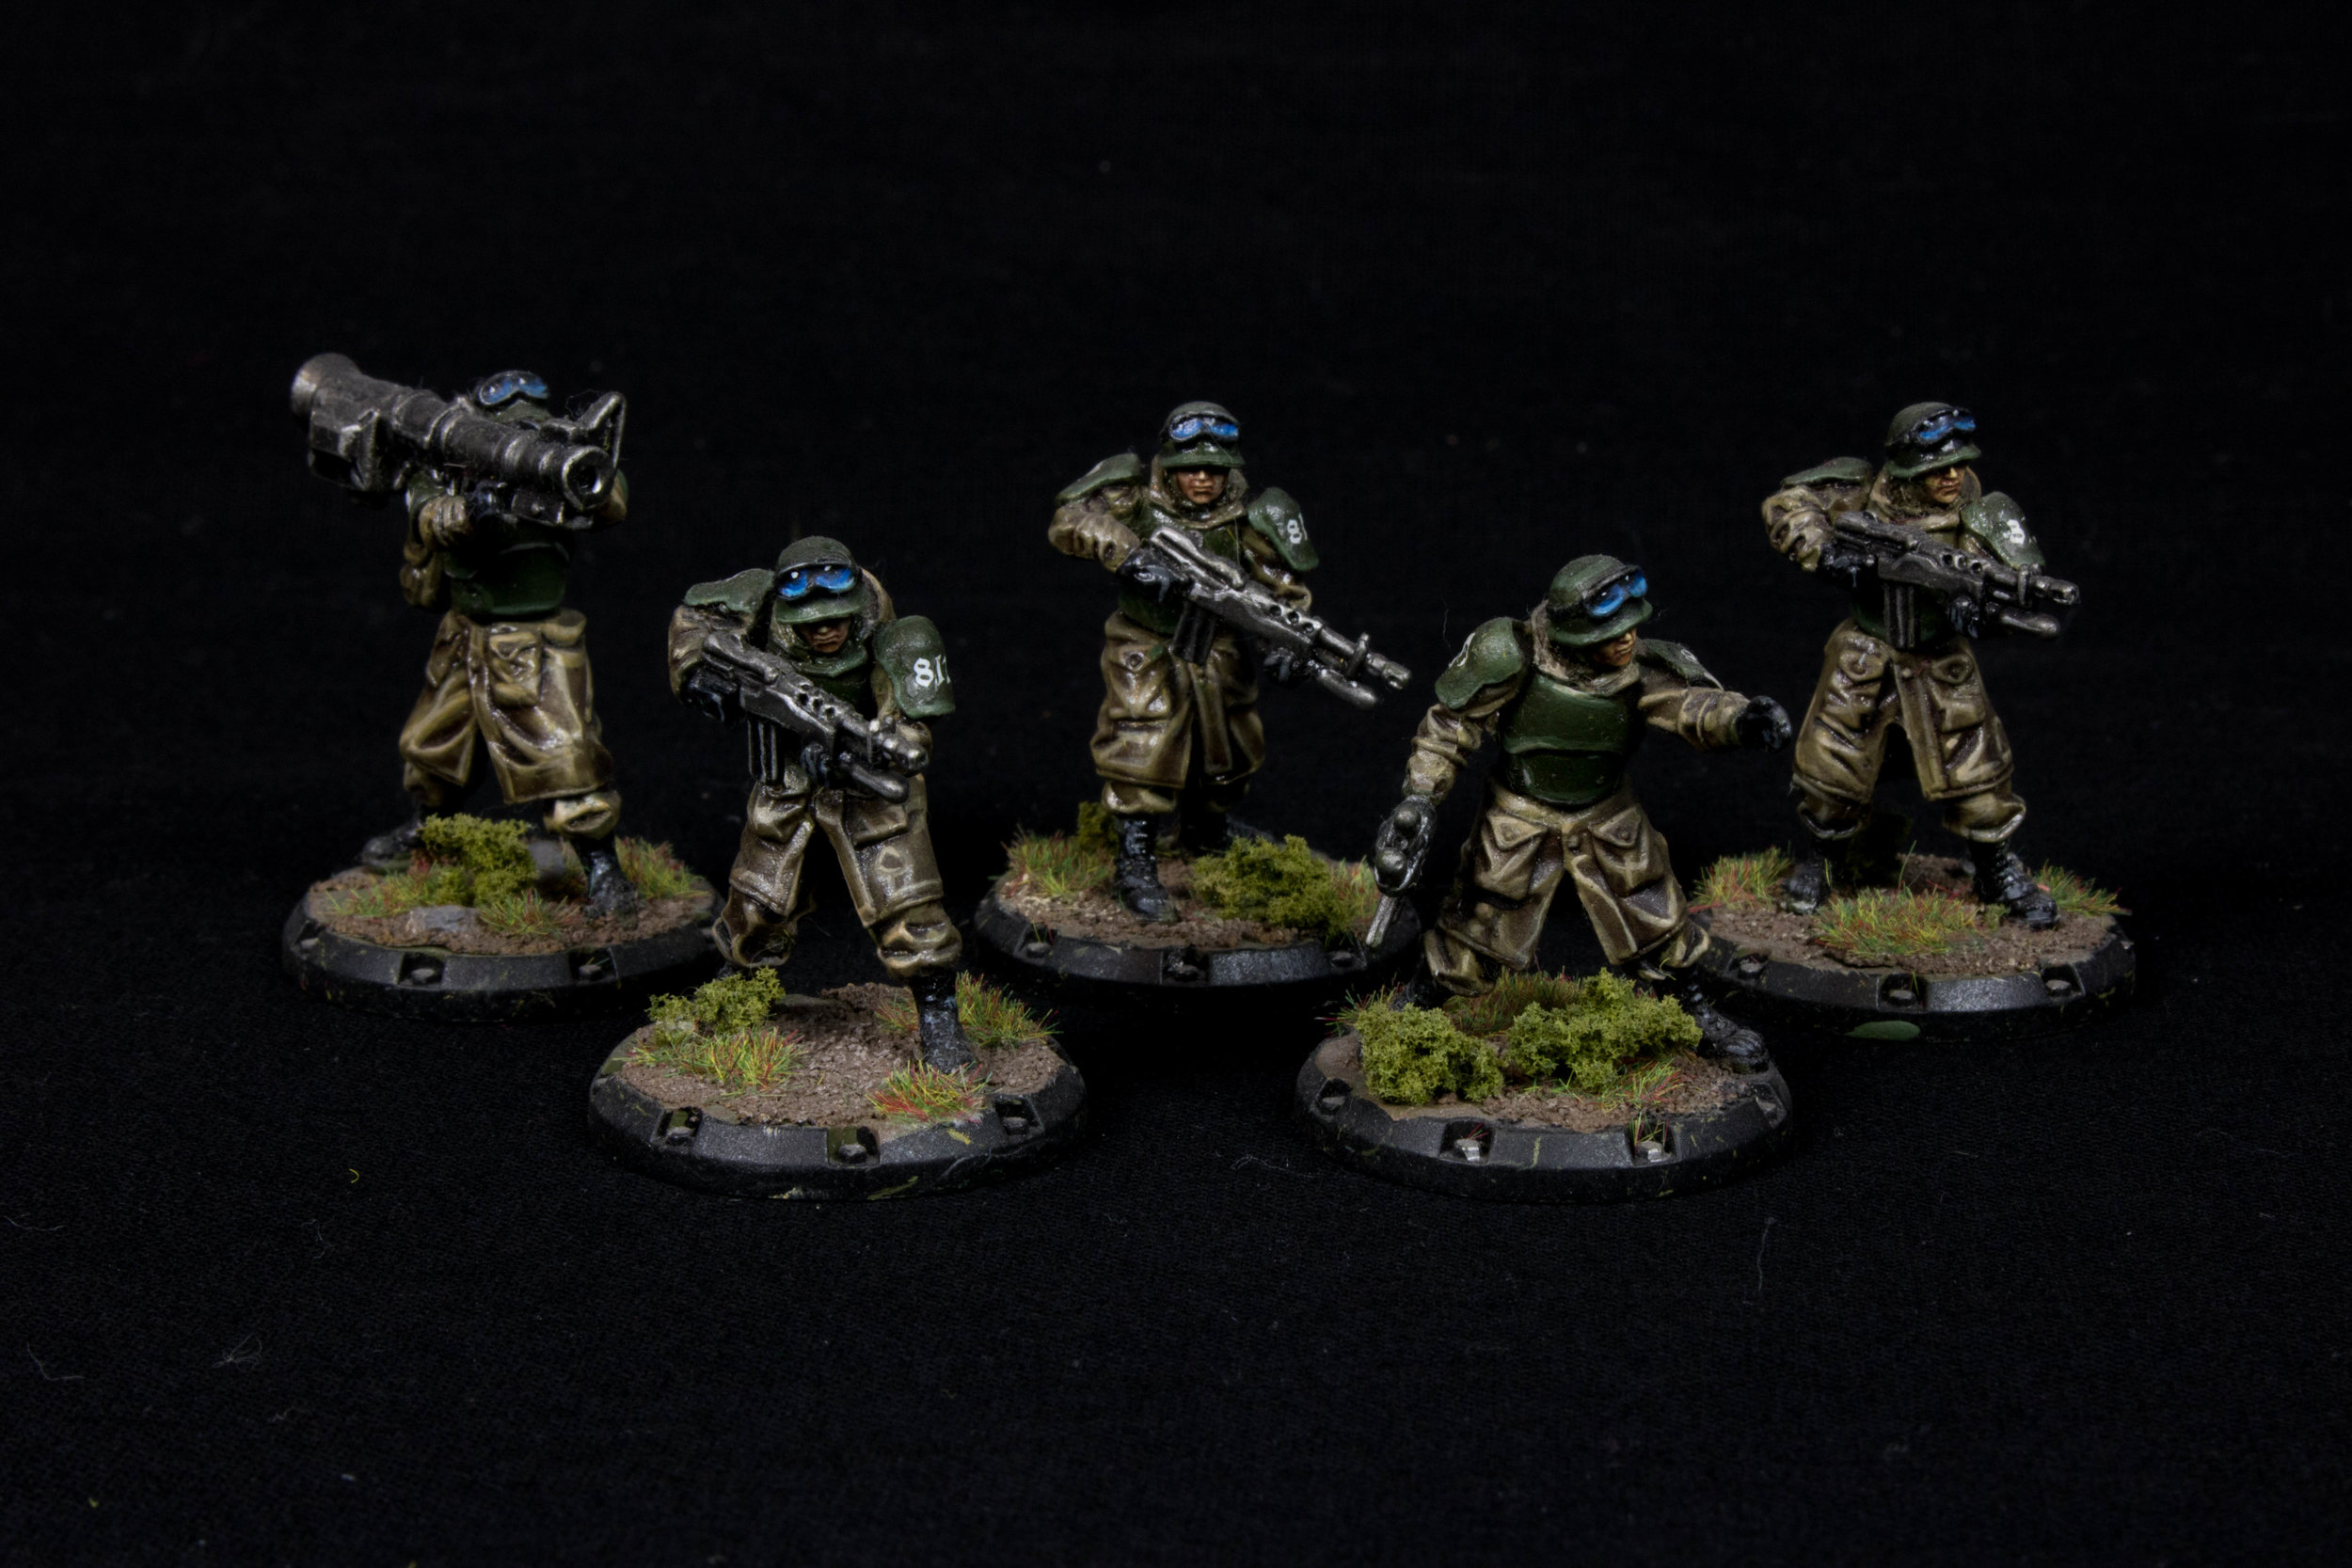 Dust Tactics WWII Warfare Germans Americans Axis Allies Bolt Action 28mm Alternate WWII-14.jpg